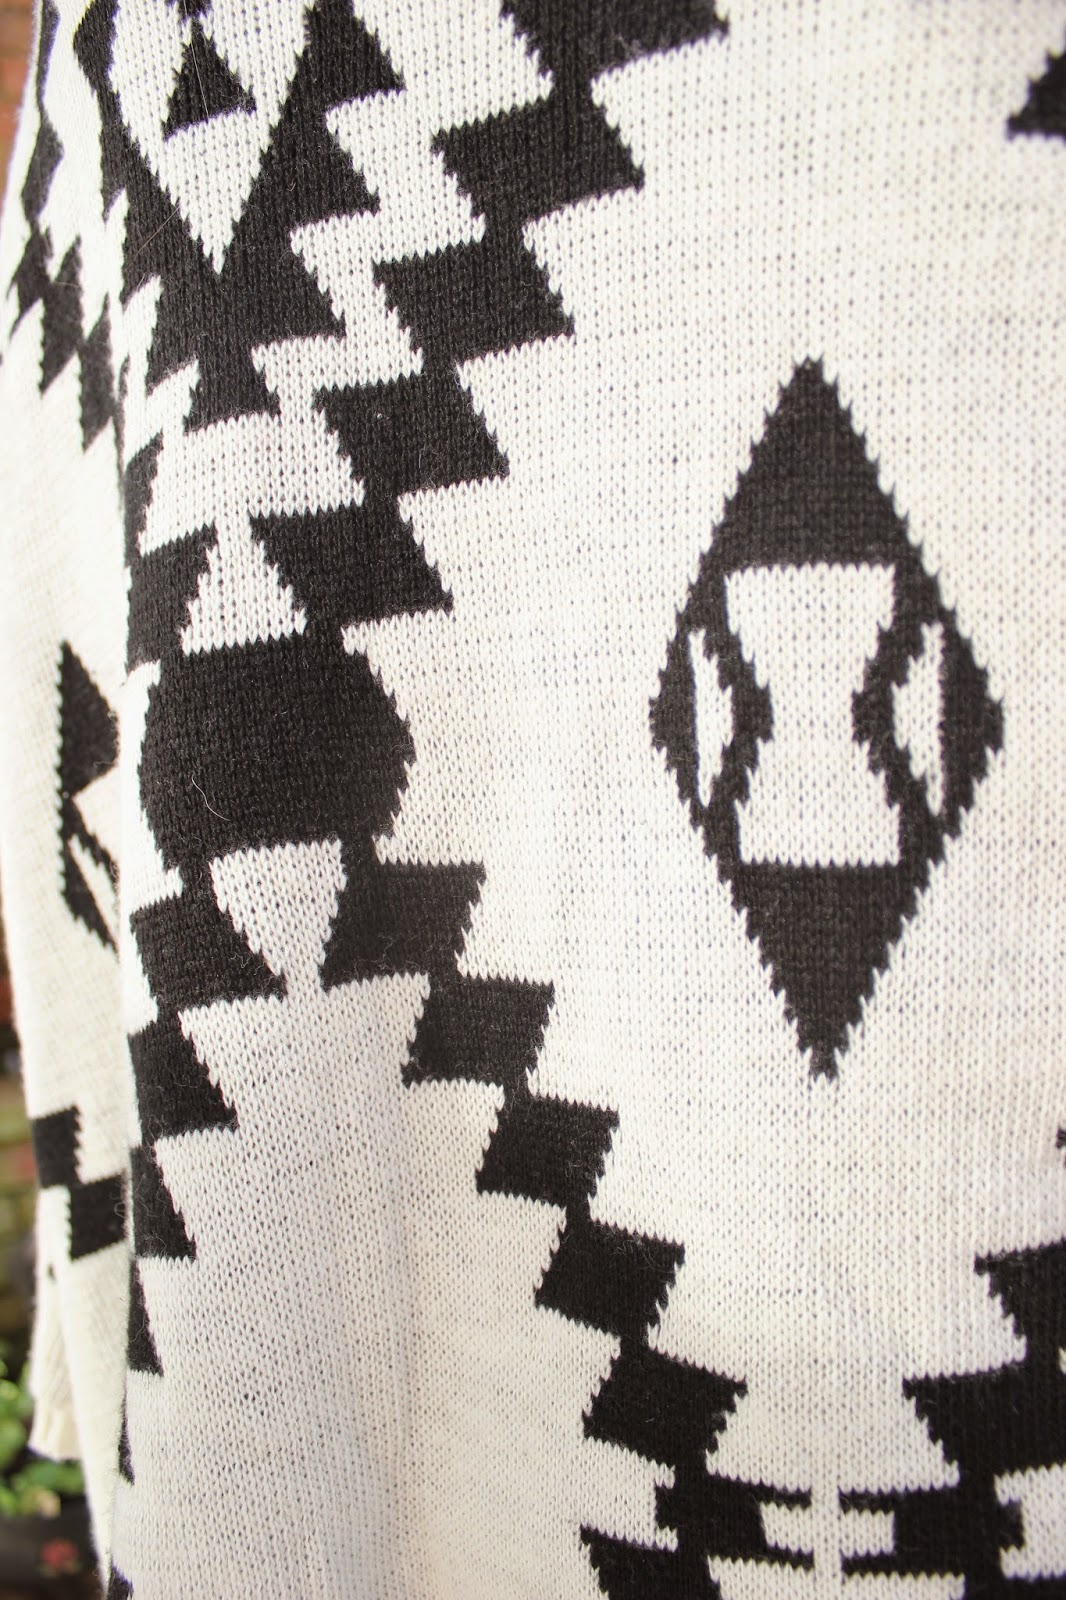 OOTD-blogger-fashion-outfit-inspiration-oasap-cardigan-aztec-print-style-clothes